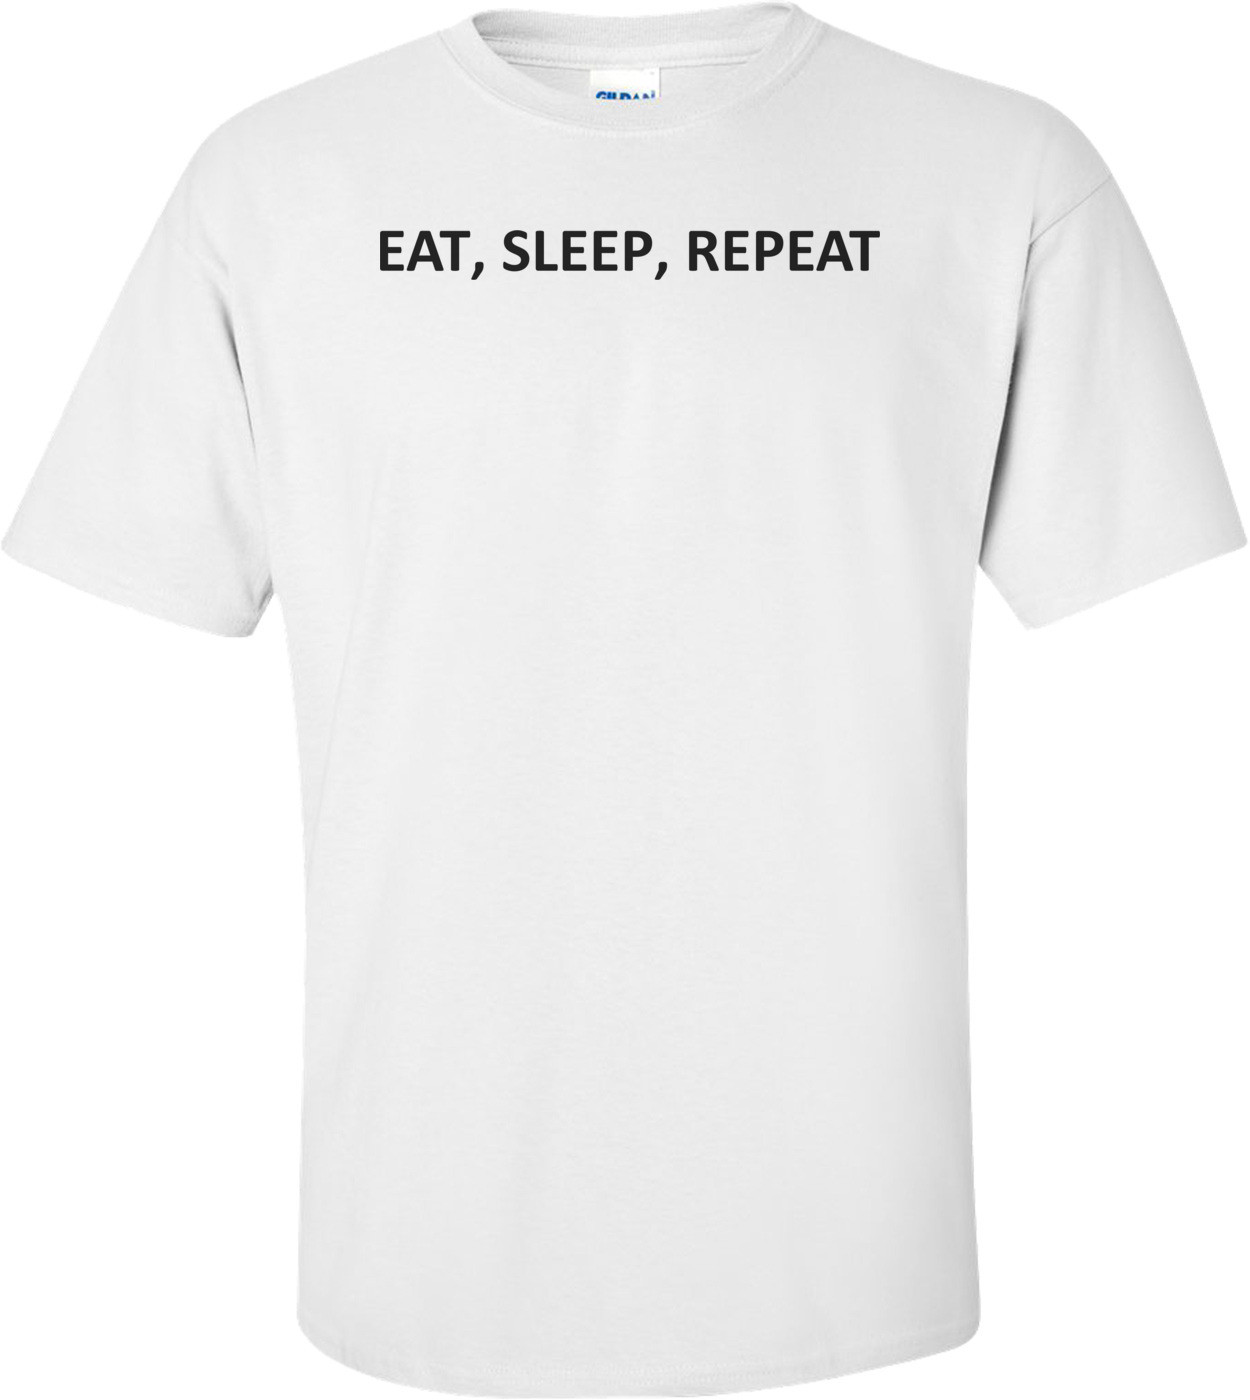 EAT, SLEEP, REPEAT Shirt